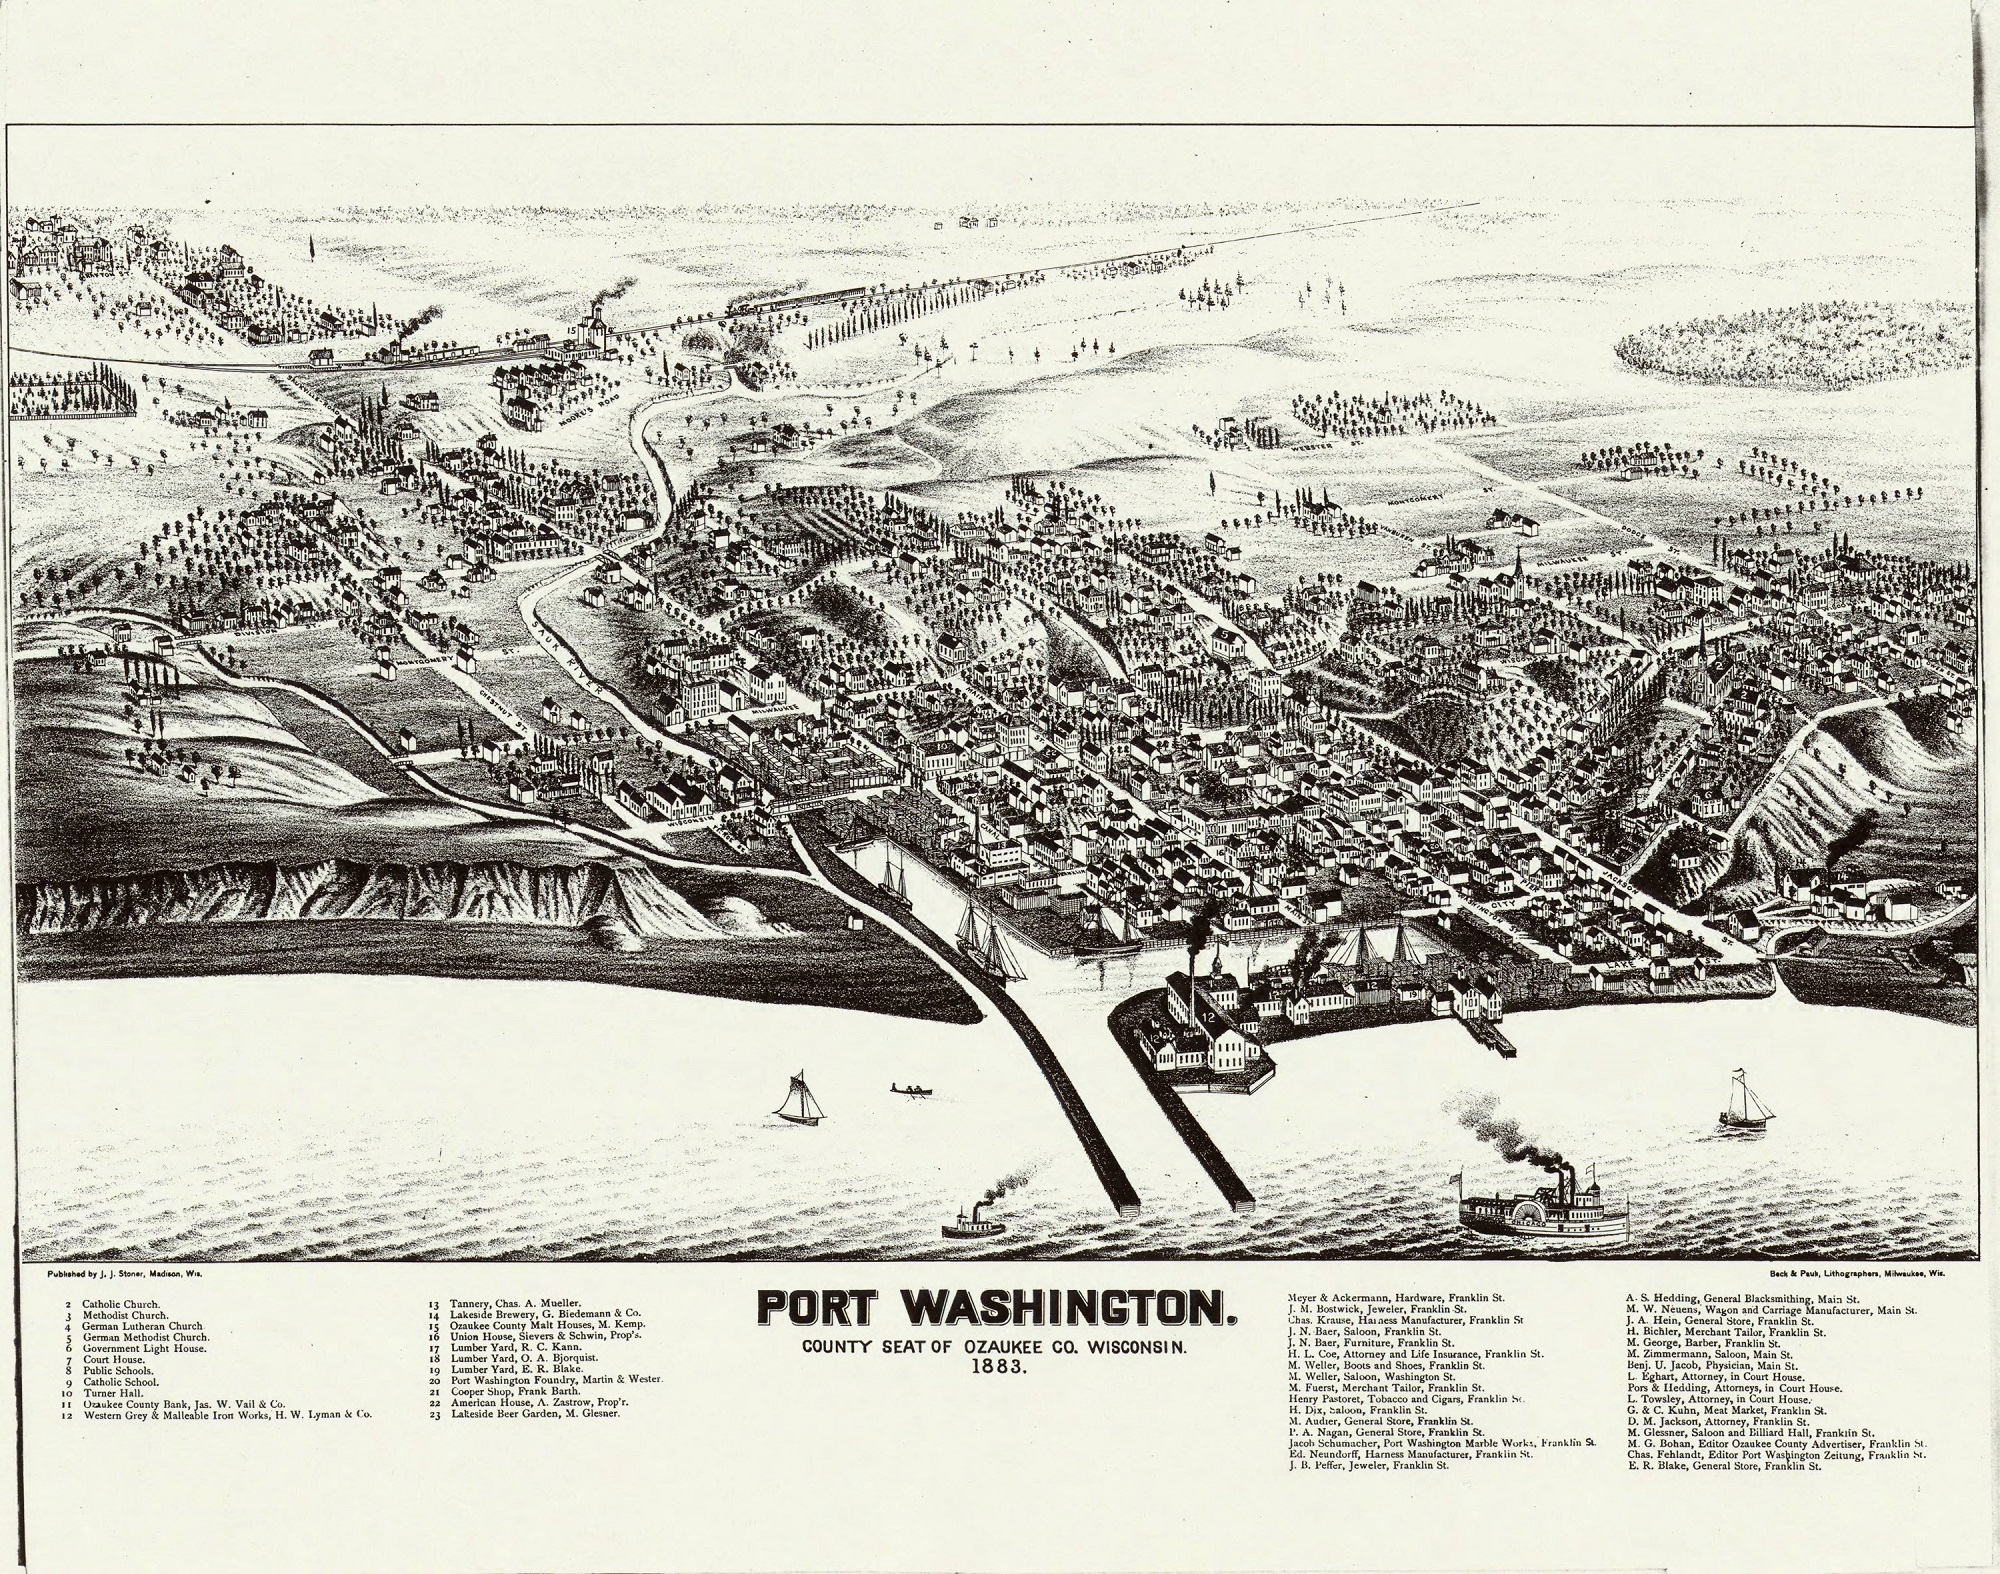 The county seat of Ozaukee County, the city of Port Washington is also the location of the only natural harbor in the county. It is pictured here in this 1883 map.